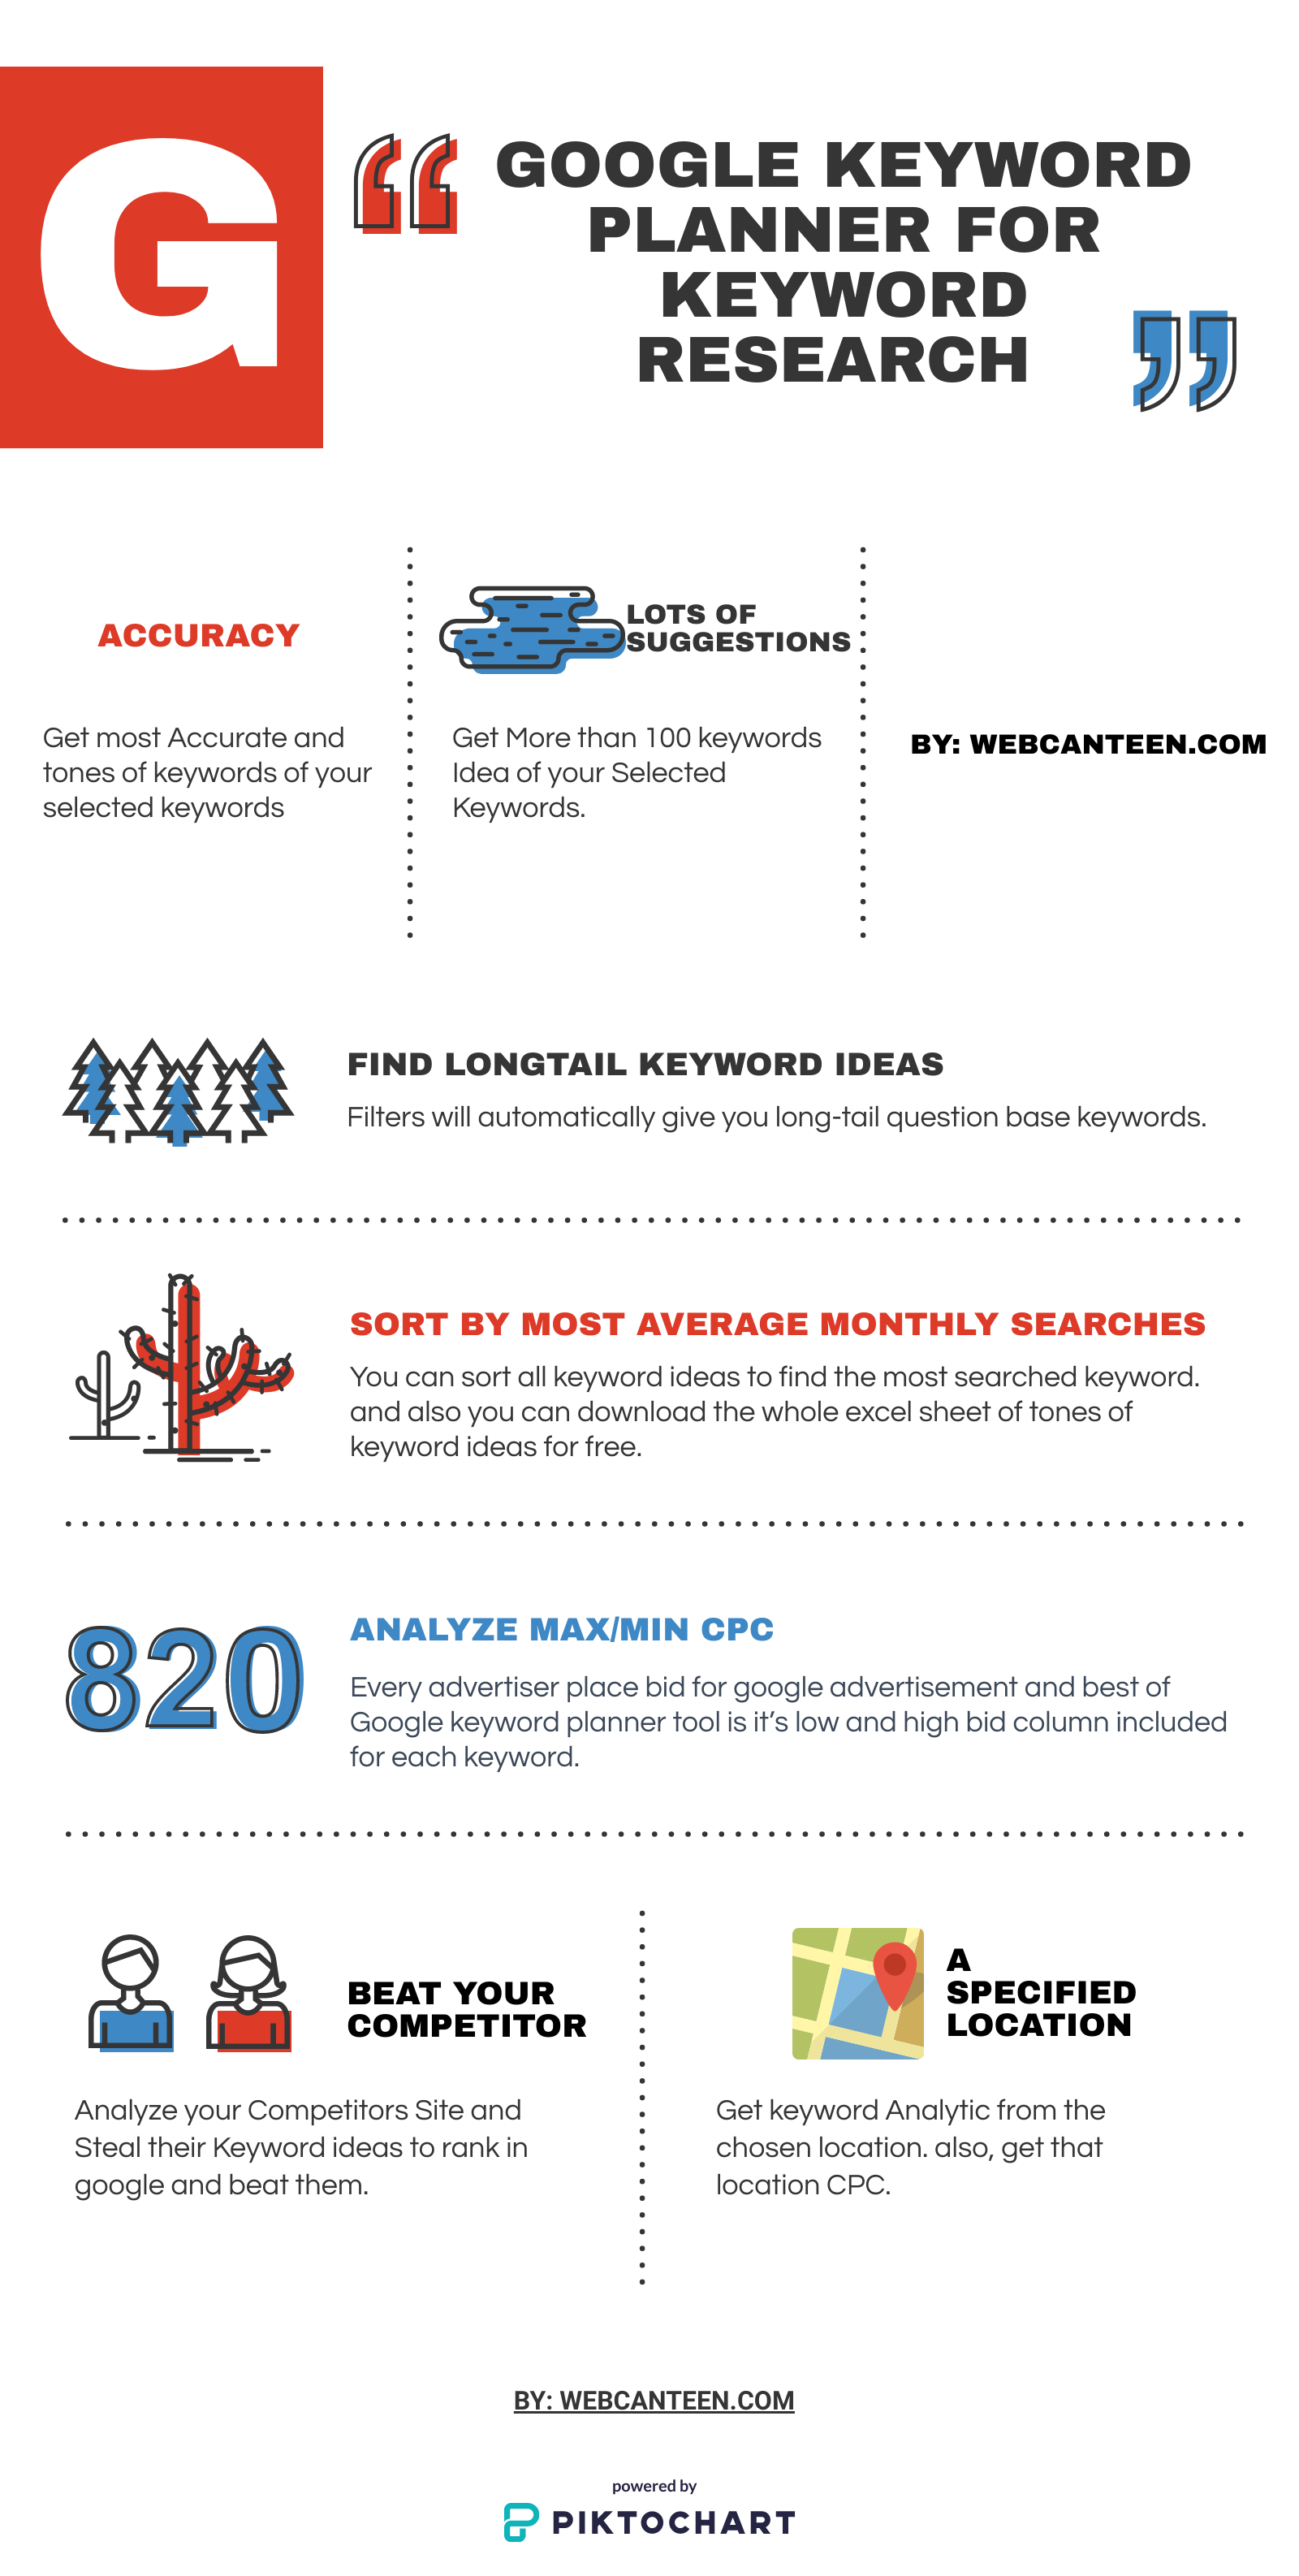 The Highlight of the Google Keyword Planner Full Infographic.